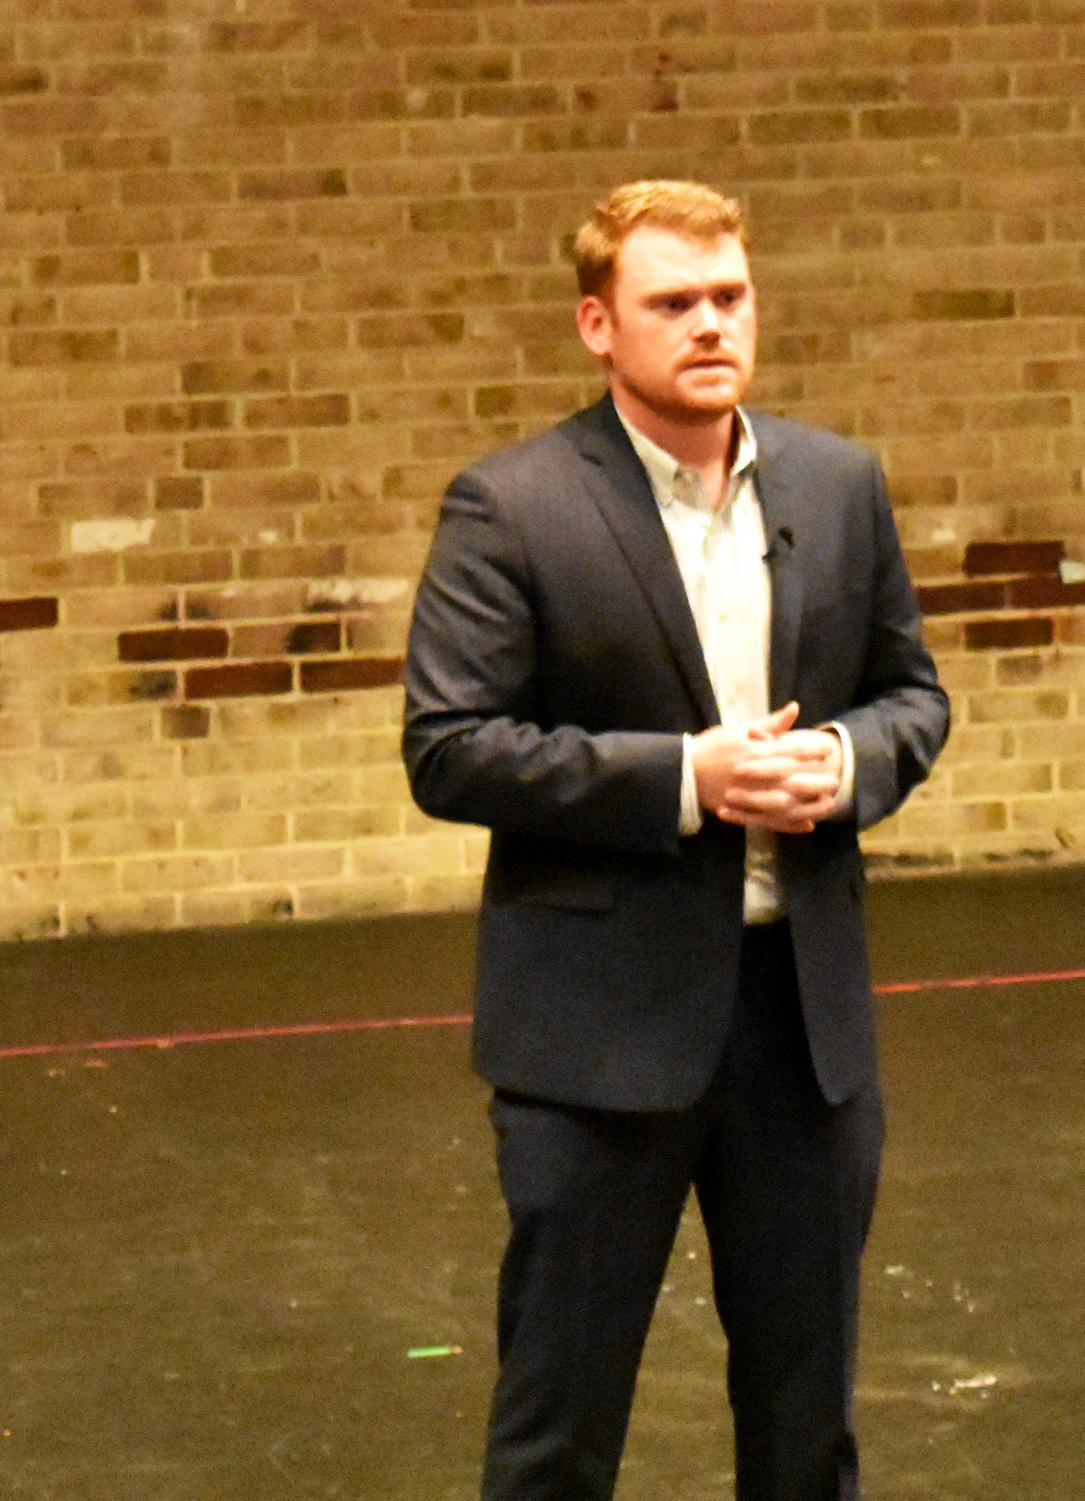 Business banker Andrew Carlson speaks at an annual Business Pitch Competition.